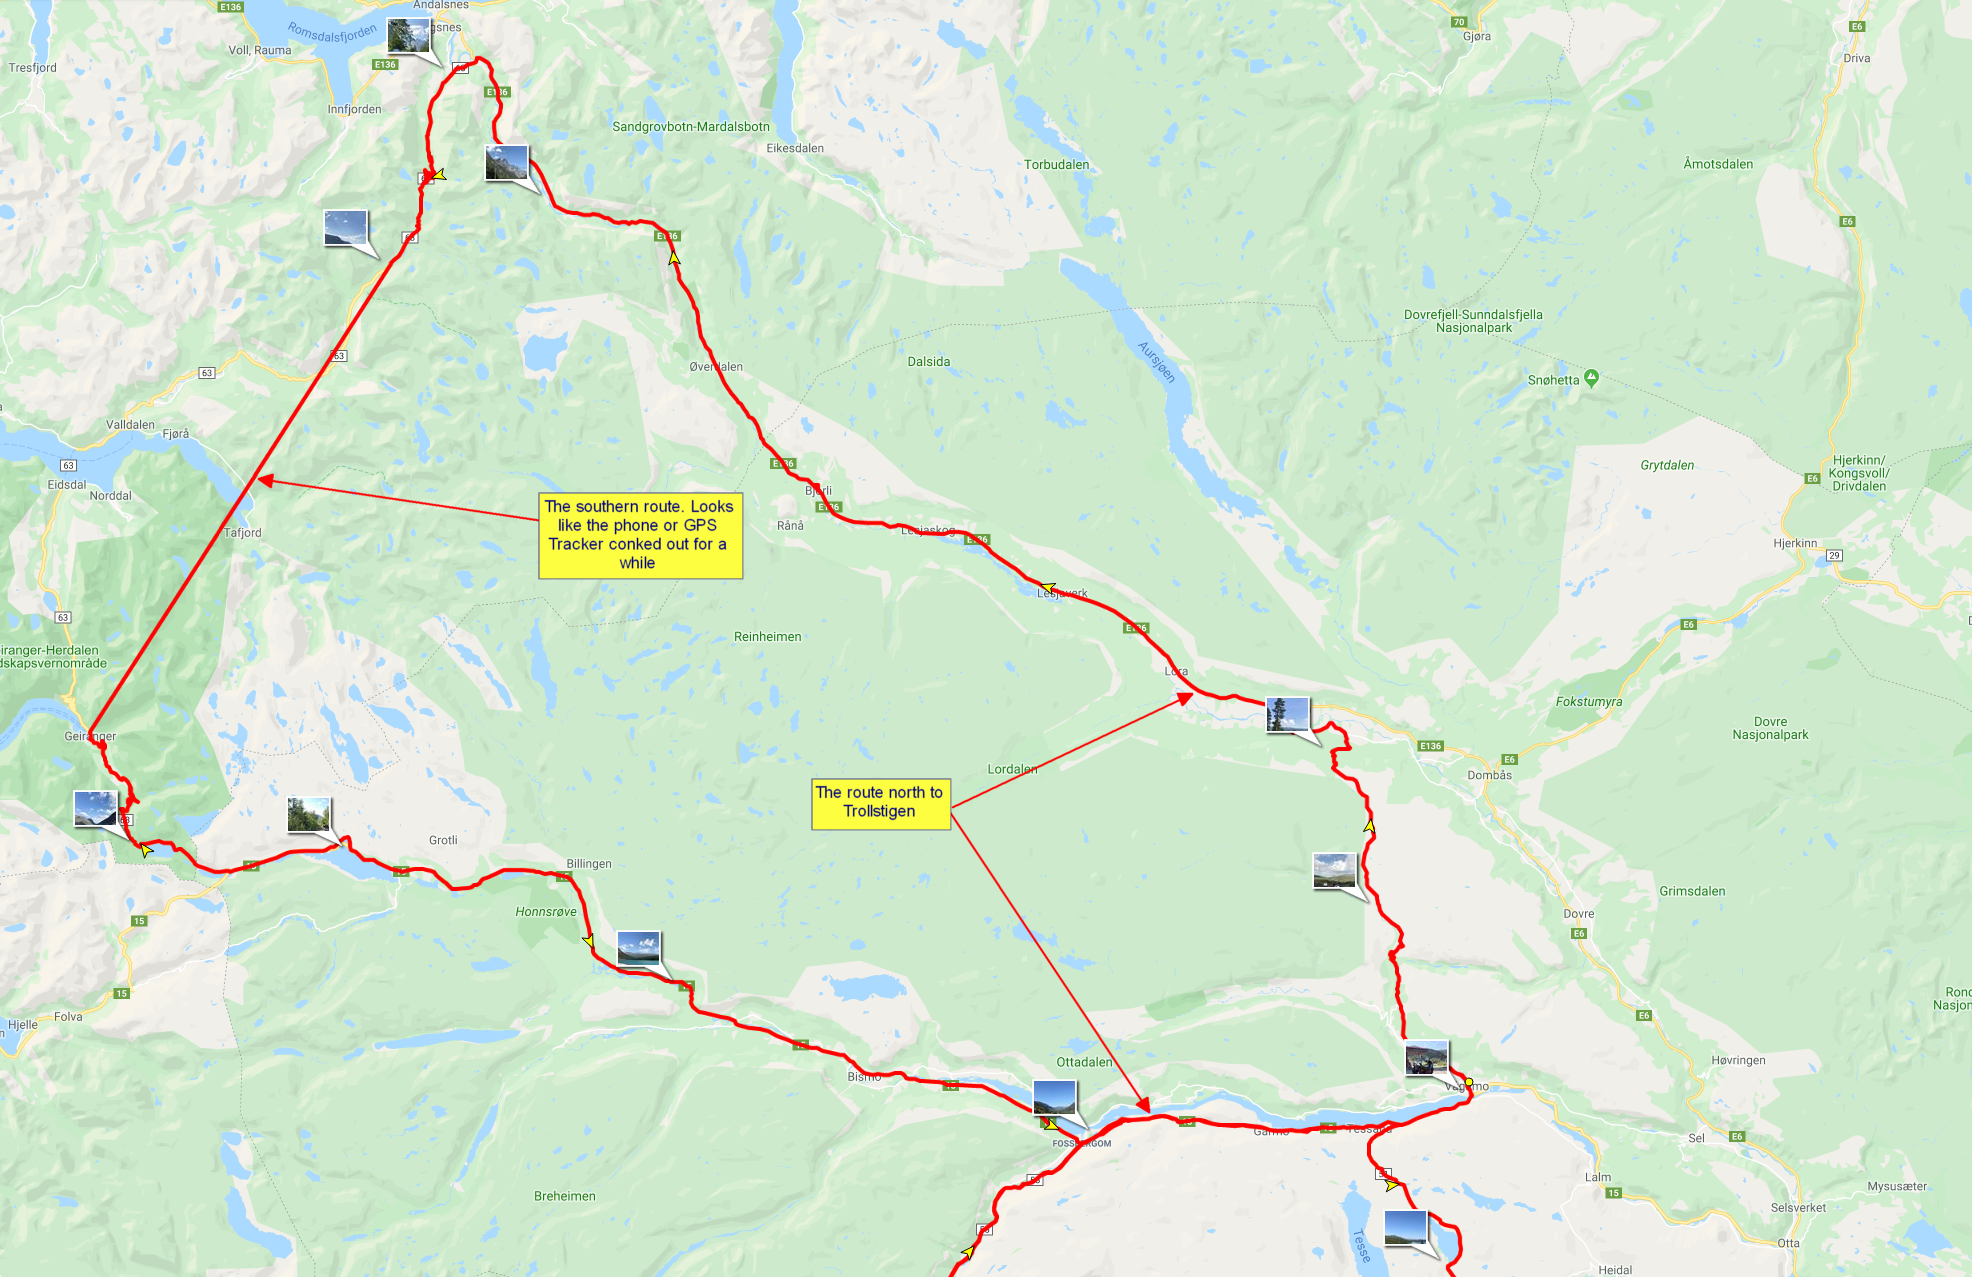 July 27th route, or most of it